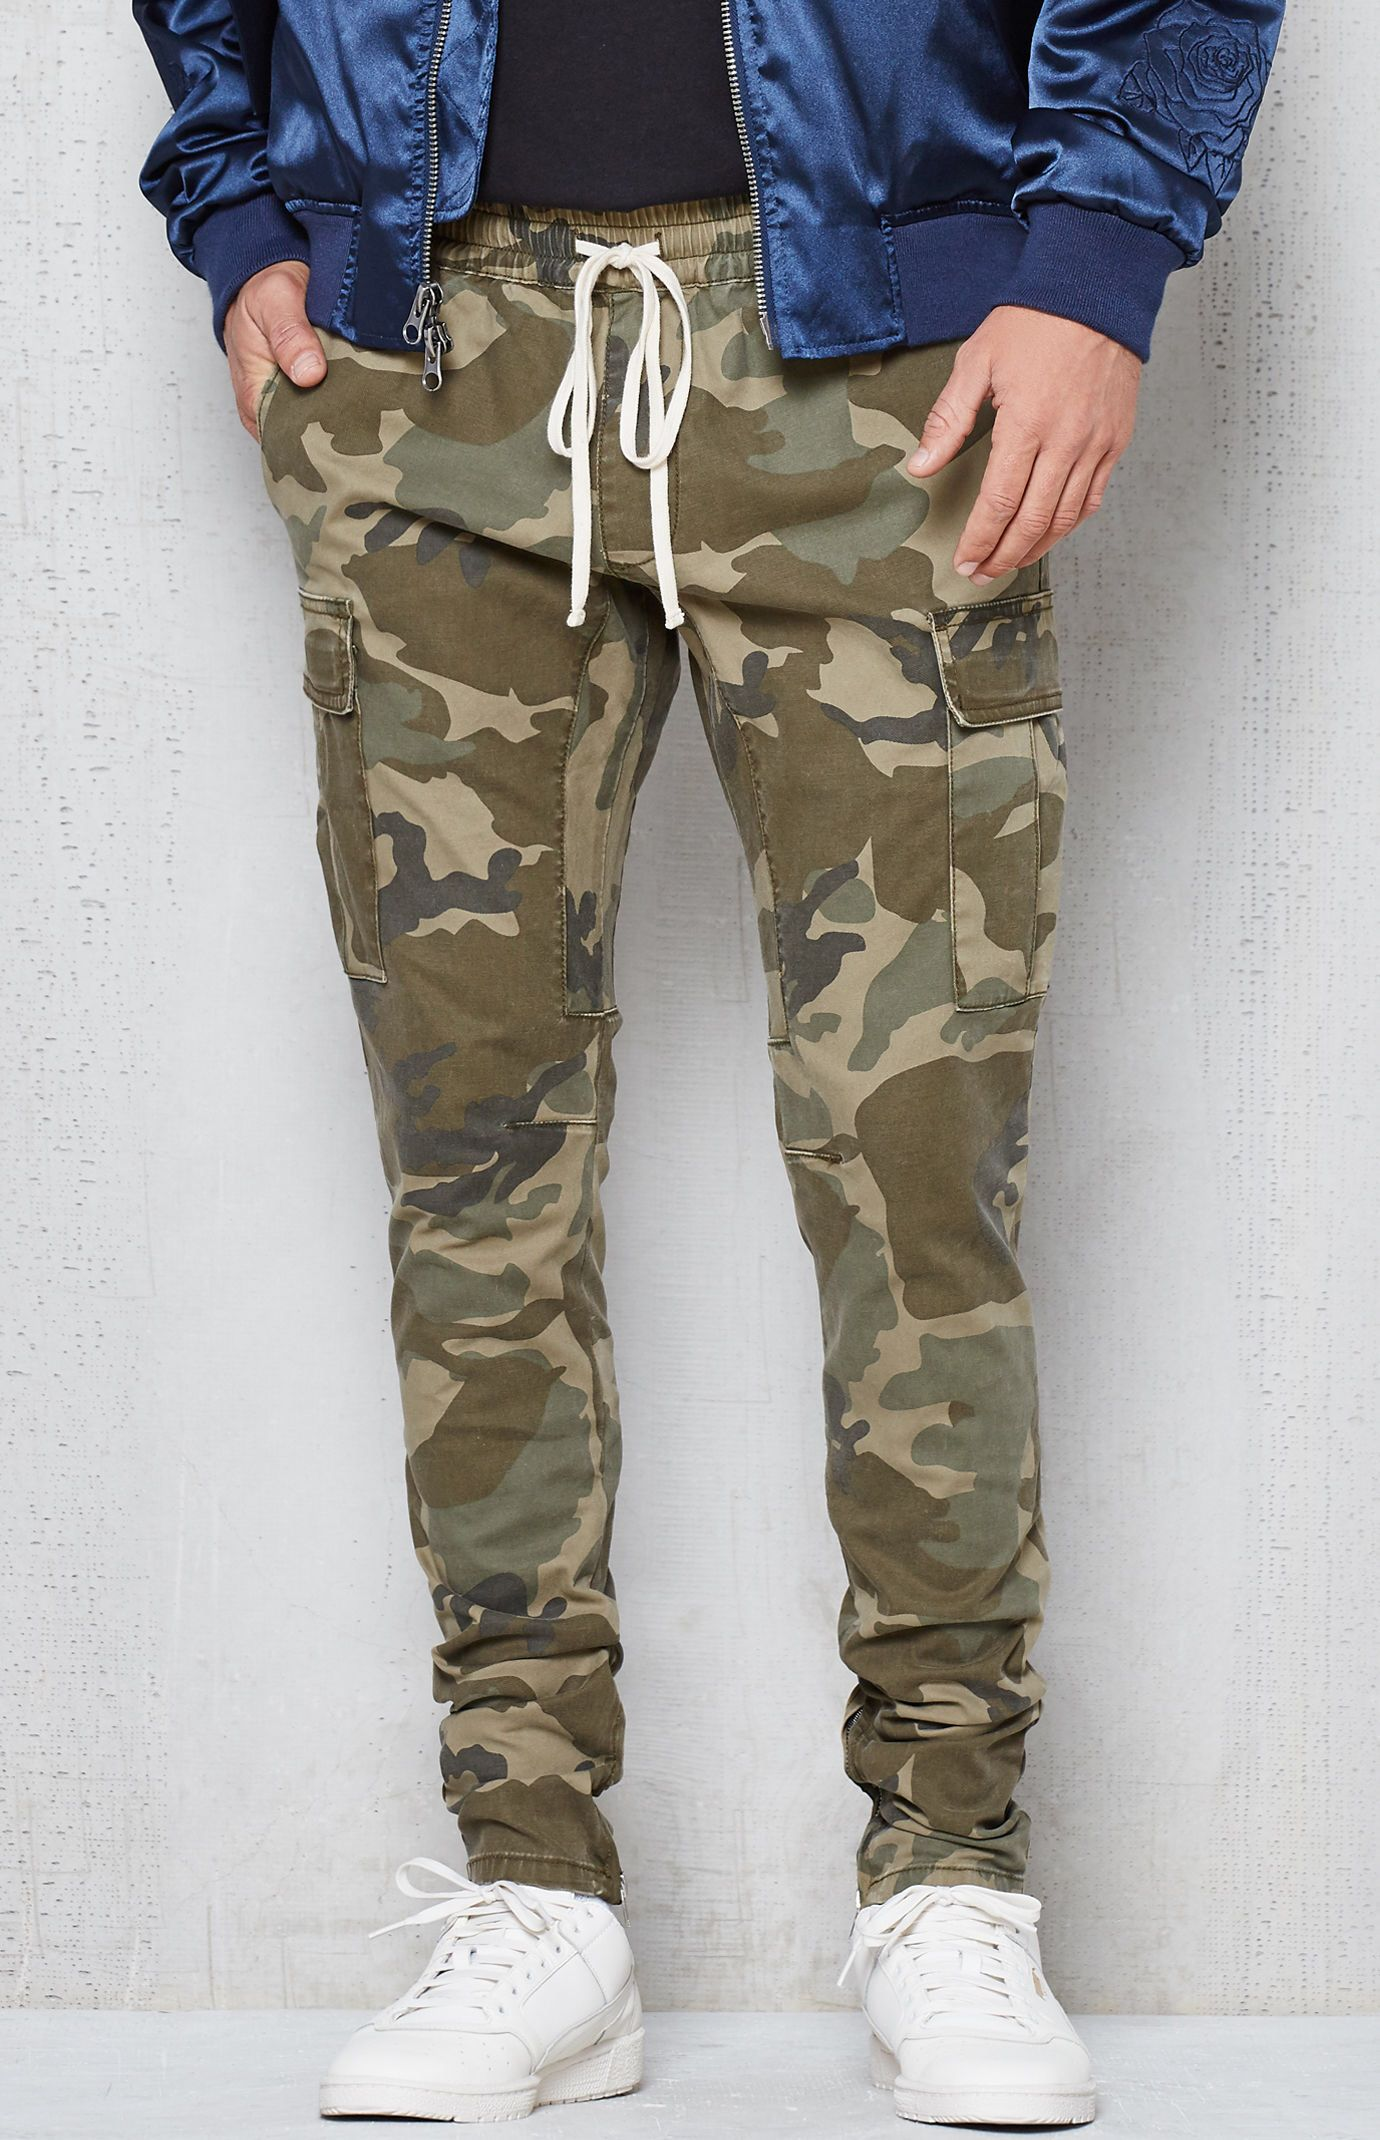 Hooked on Drop Skinny Camo Cargo Jogger Pants that I found on the PacSun App | Menu0026#39;s UrbN Wear ...